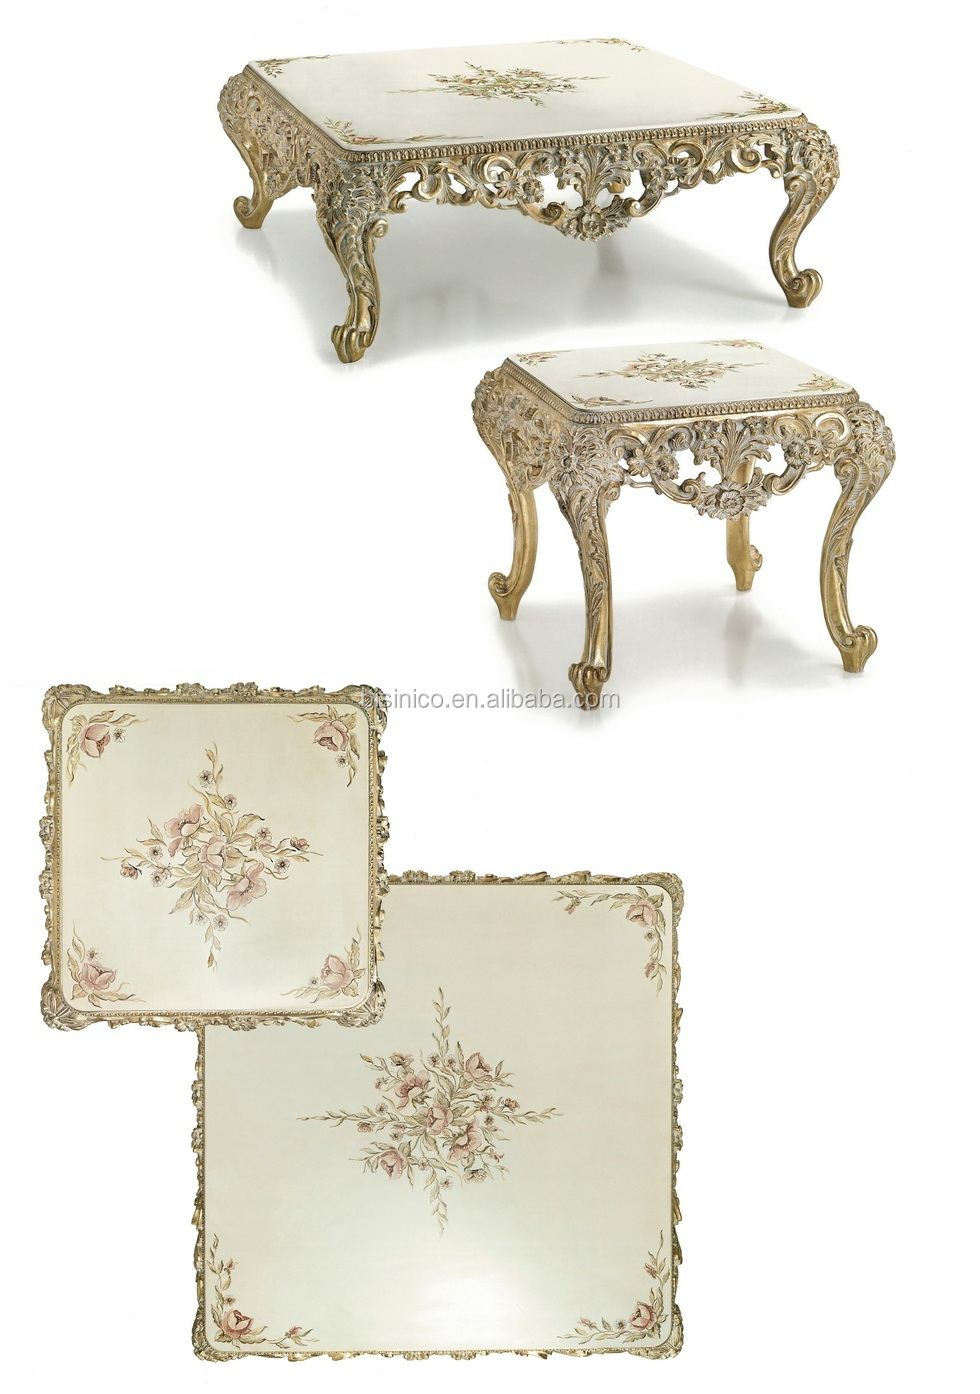 Wondrous Antique Wood Carved Floral Design Marble Top Coffee Table And End Table Set Buy Marble Top Coffee Table And End Table Antique Centre Table Uwap Interior Chair Design Uwaporg